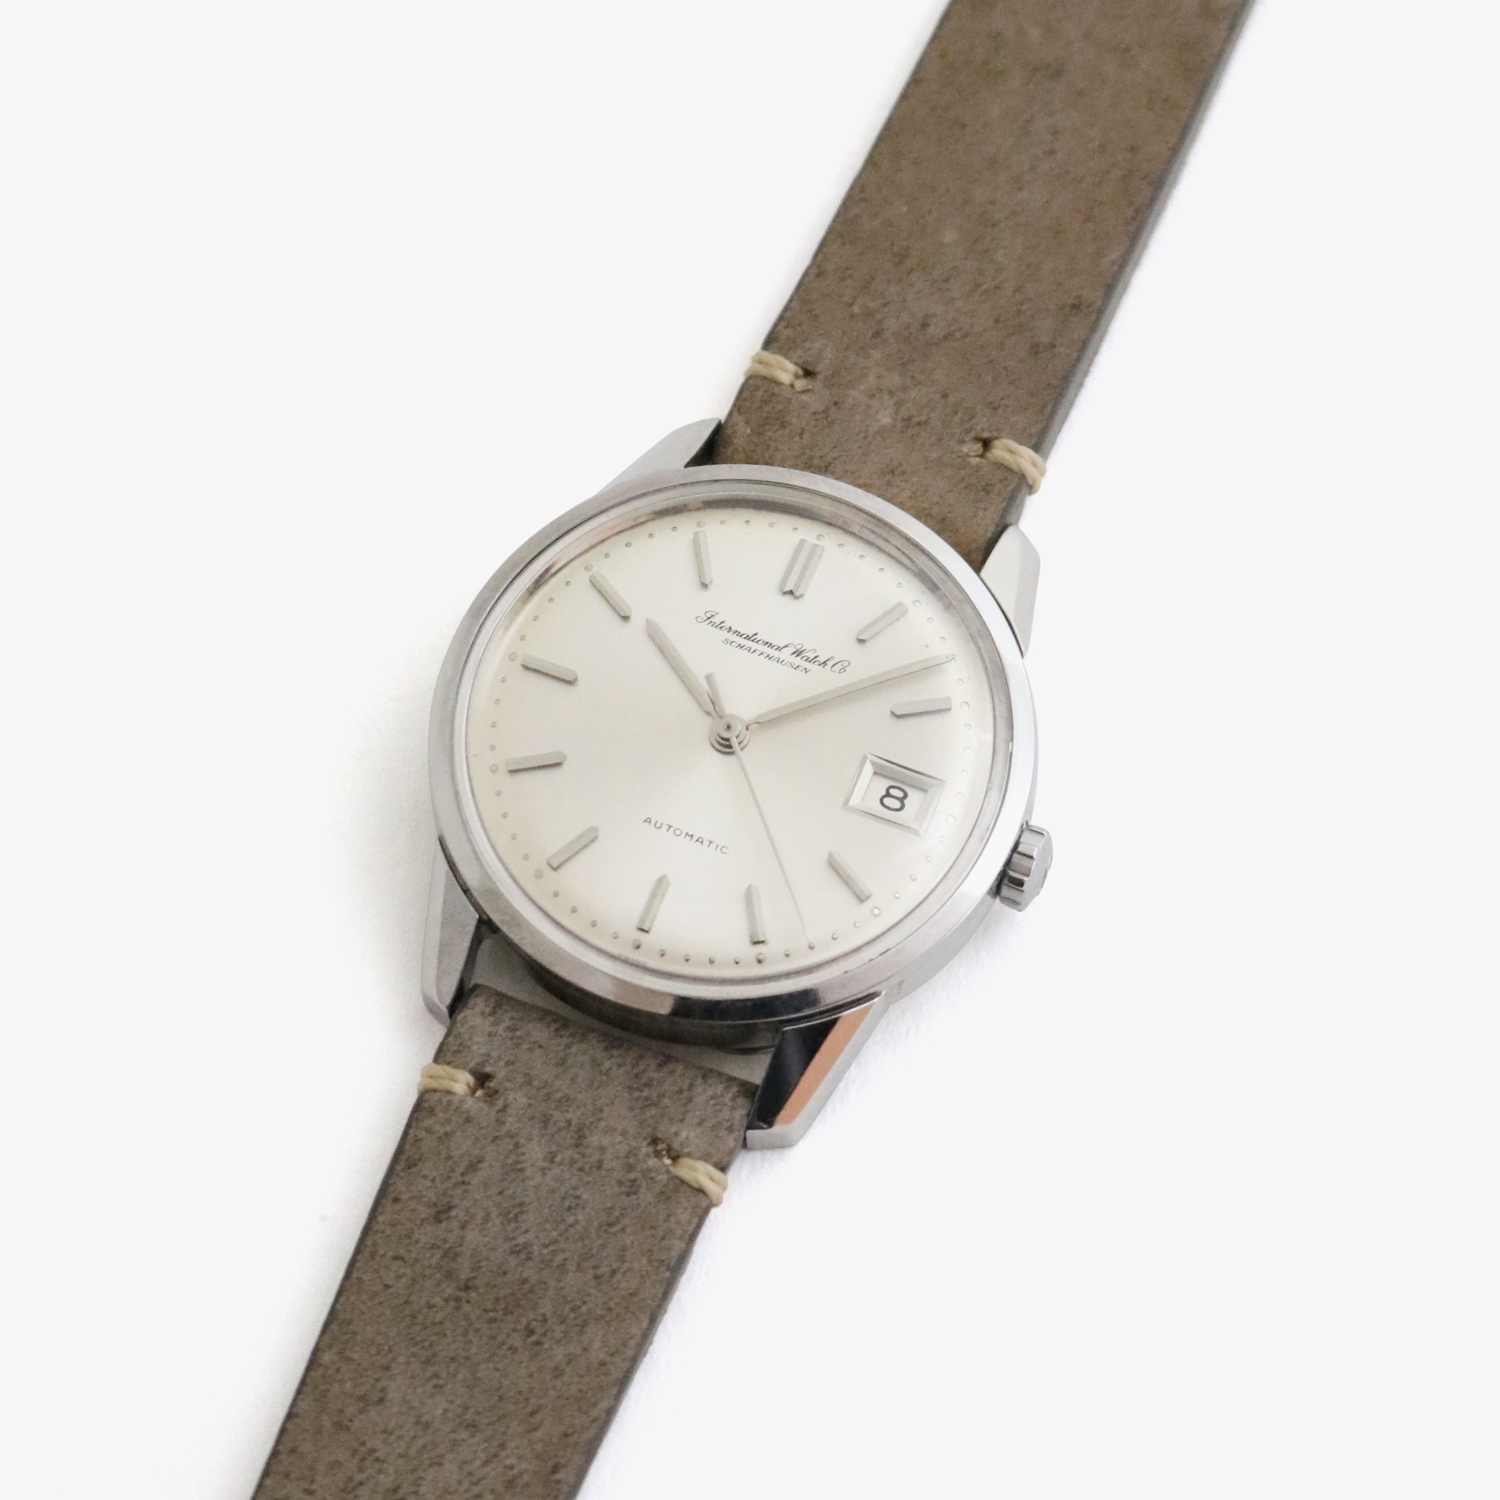 SOLD OUT|IWC|AUTOMATIC - 60's|Vintage IWC